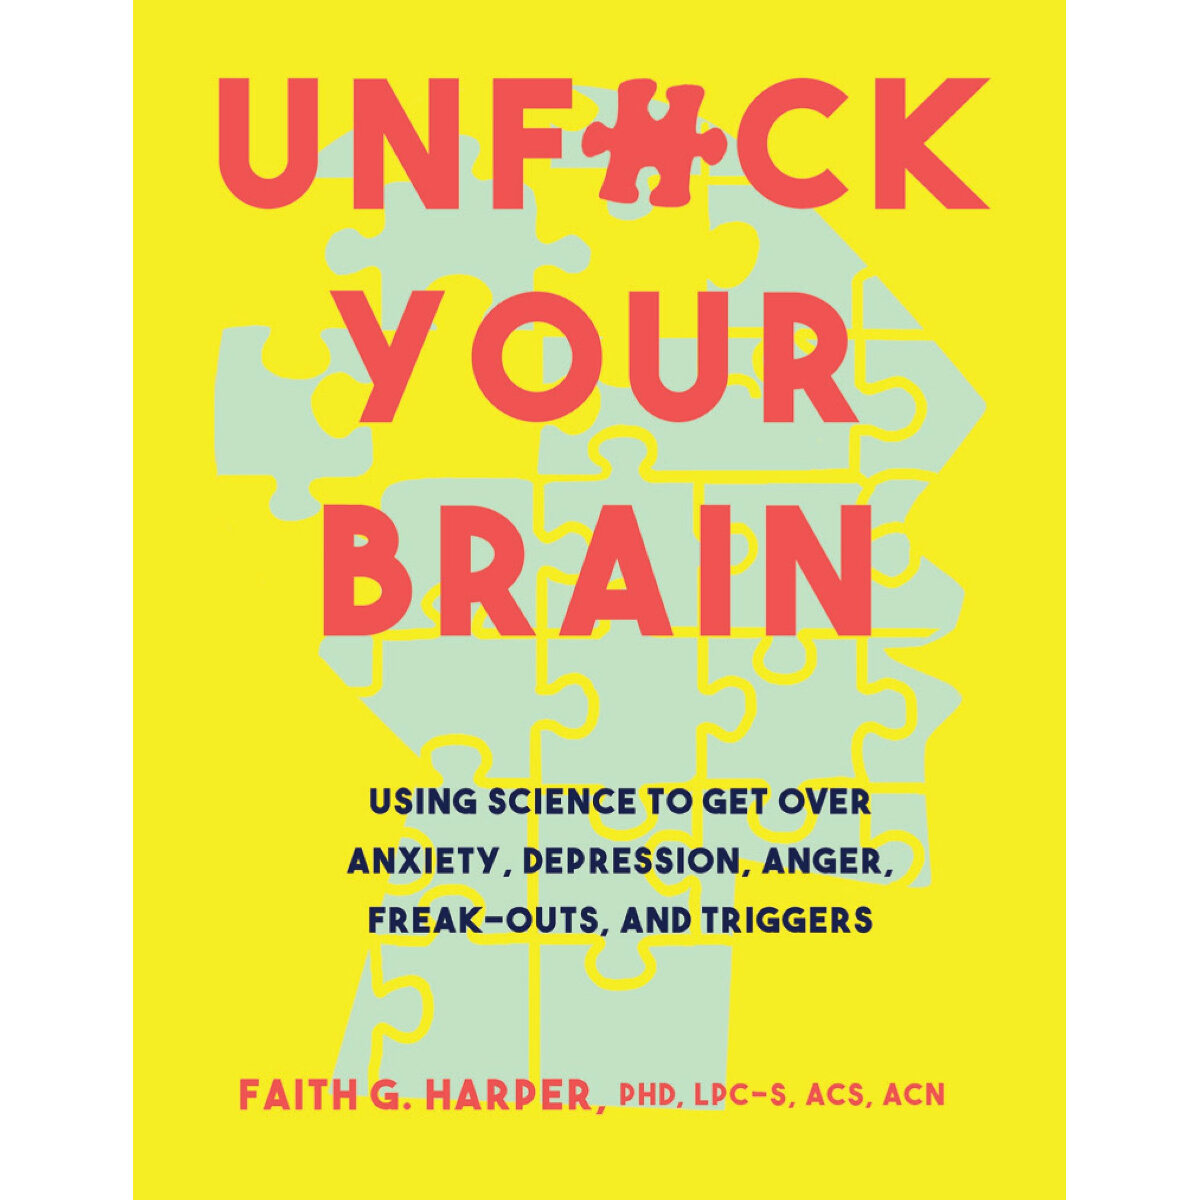 image Unfuck-Your-Brain-Book-Main-Image